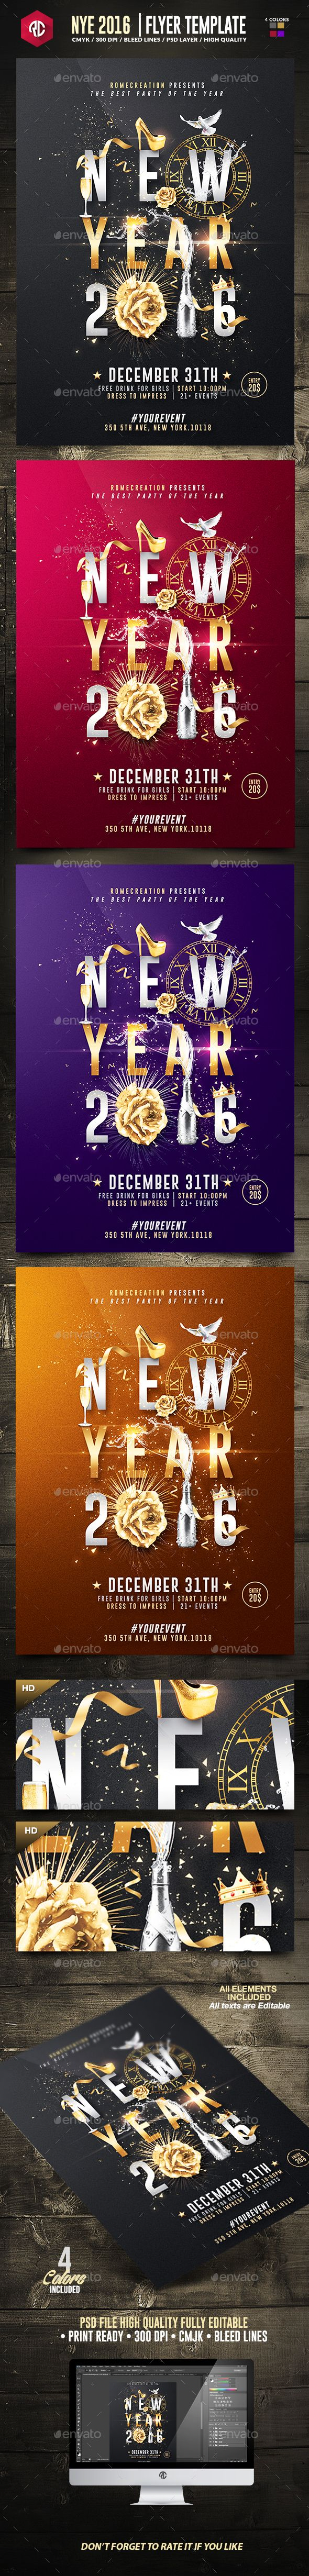 New Year 2016 | Psd Poster Template - Print Templates